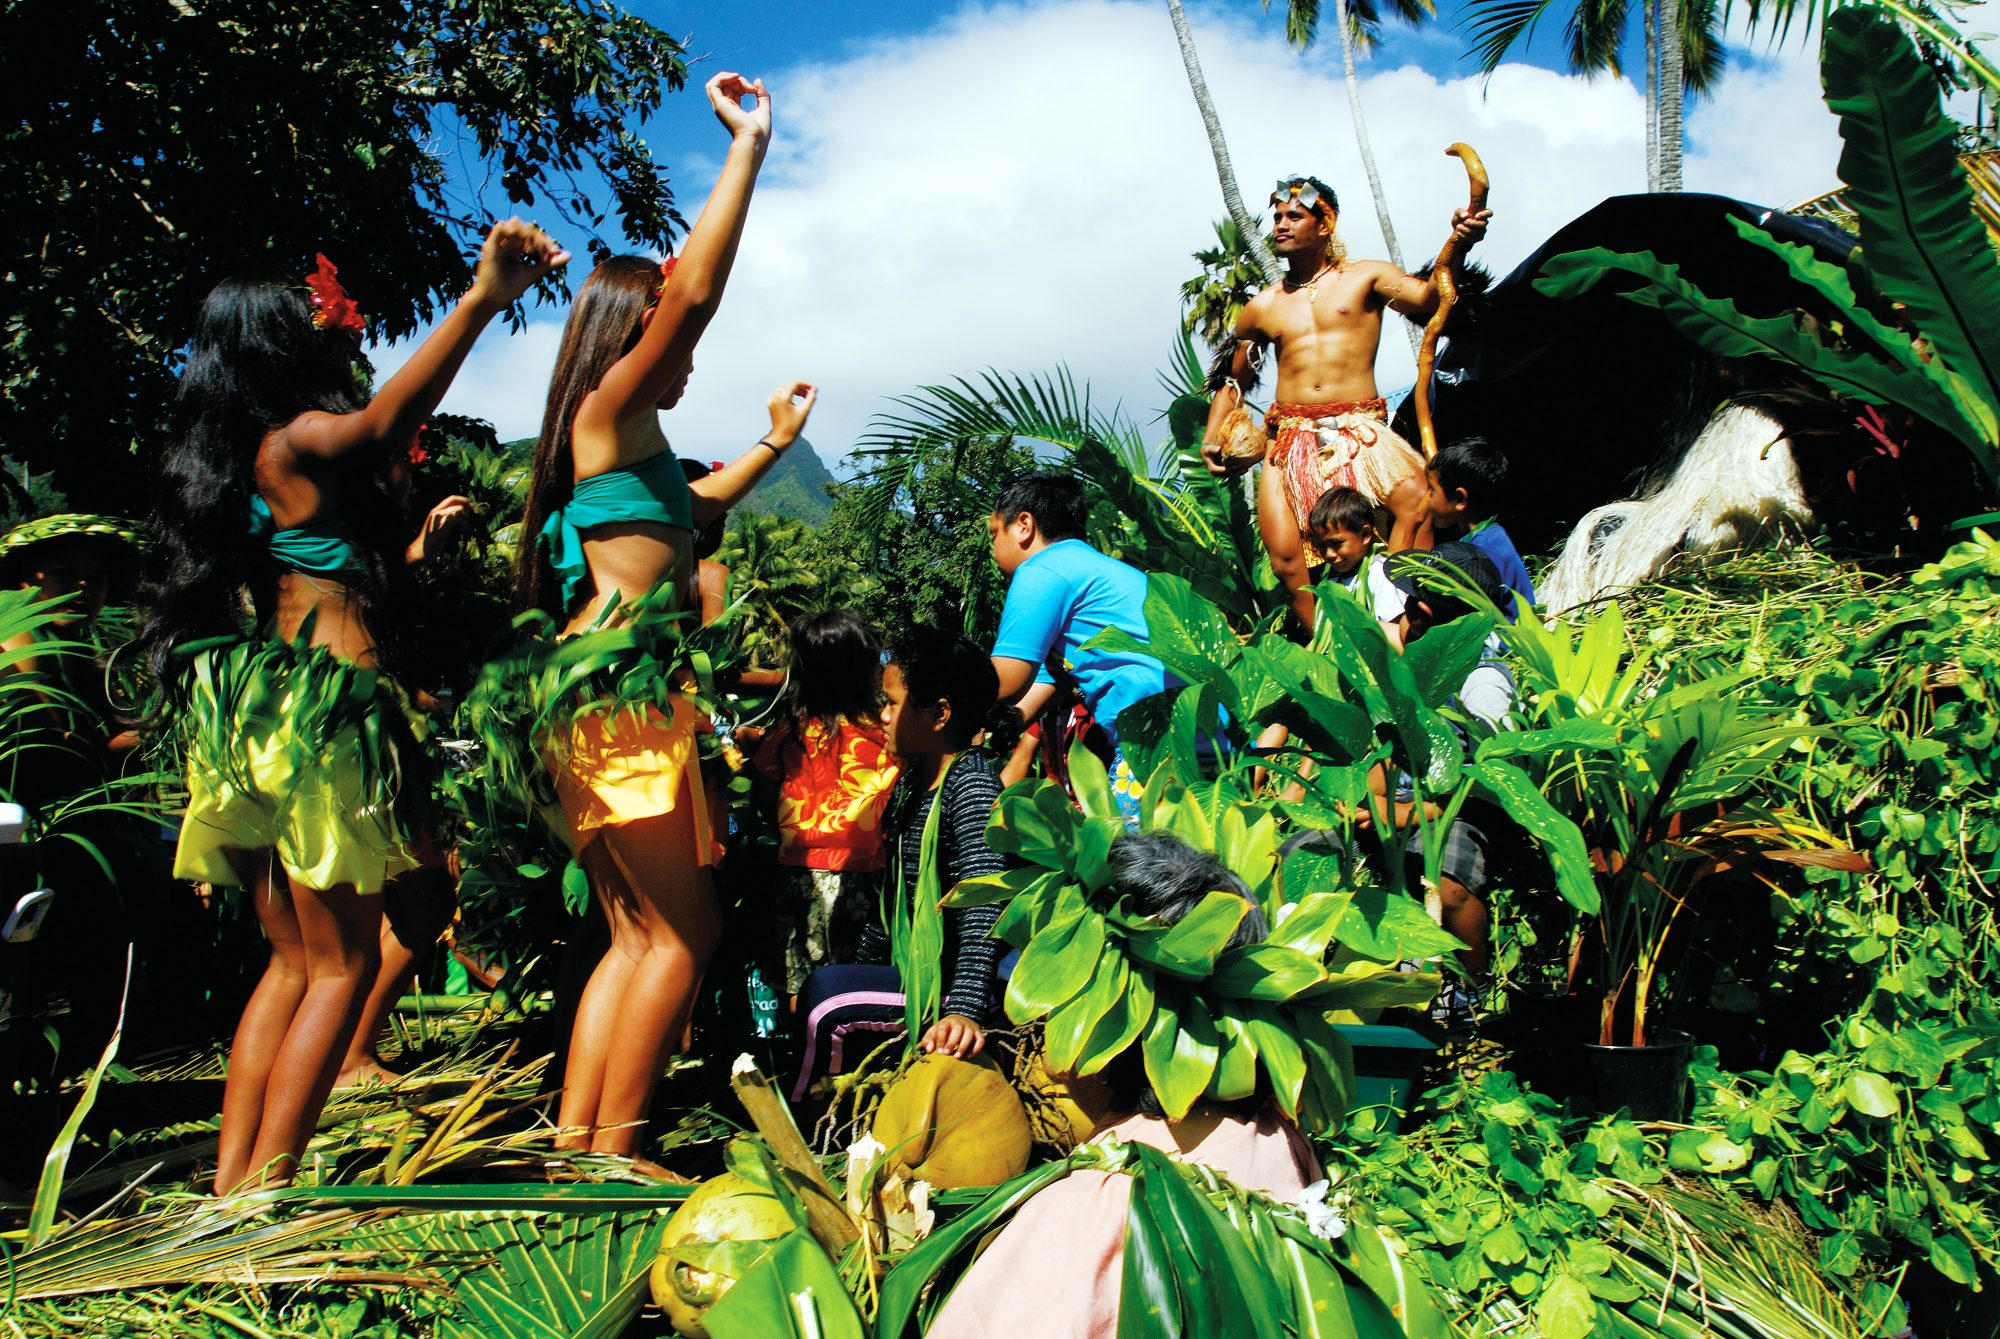 Peu tupuna, ancestral stories and legends , abound during the 2008 Te Maeva Nui festival float parade in Avarua. Many re-enactments explore the origins of the people of each island. Maui, the mischievous demi-god, is also a popular subject of many peu tupuna. The carnival commemorates the Cook Islands attaining self governance in 1965, while maintaining its free association with New Zealand.